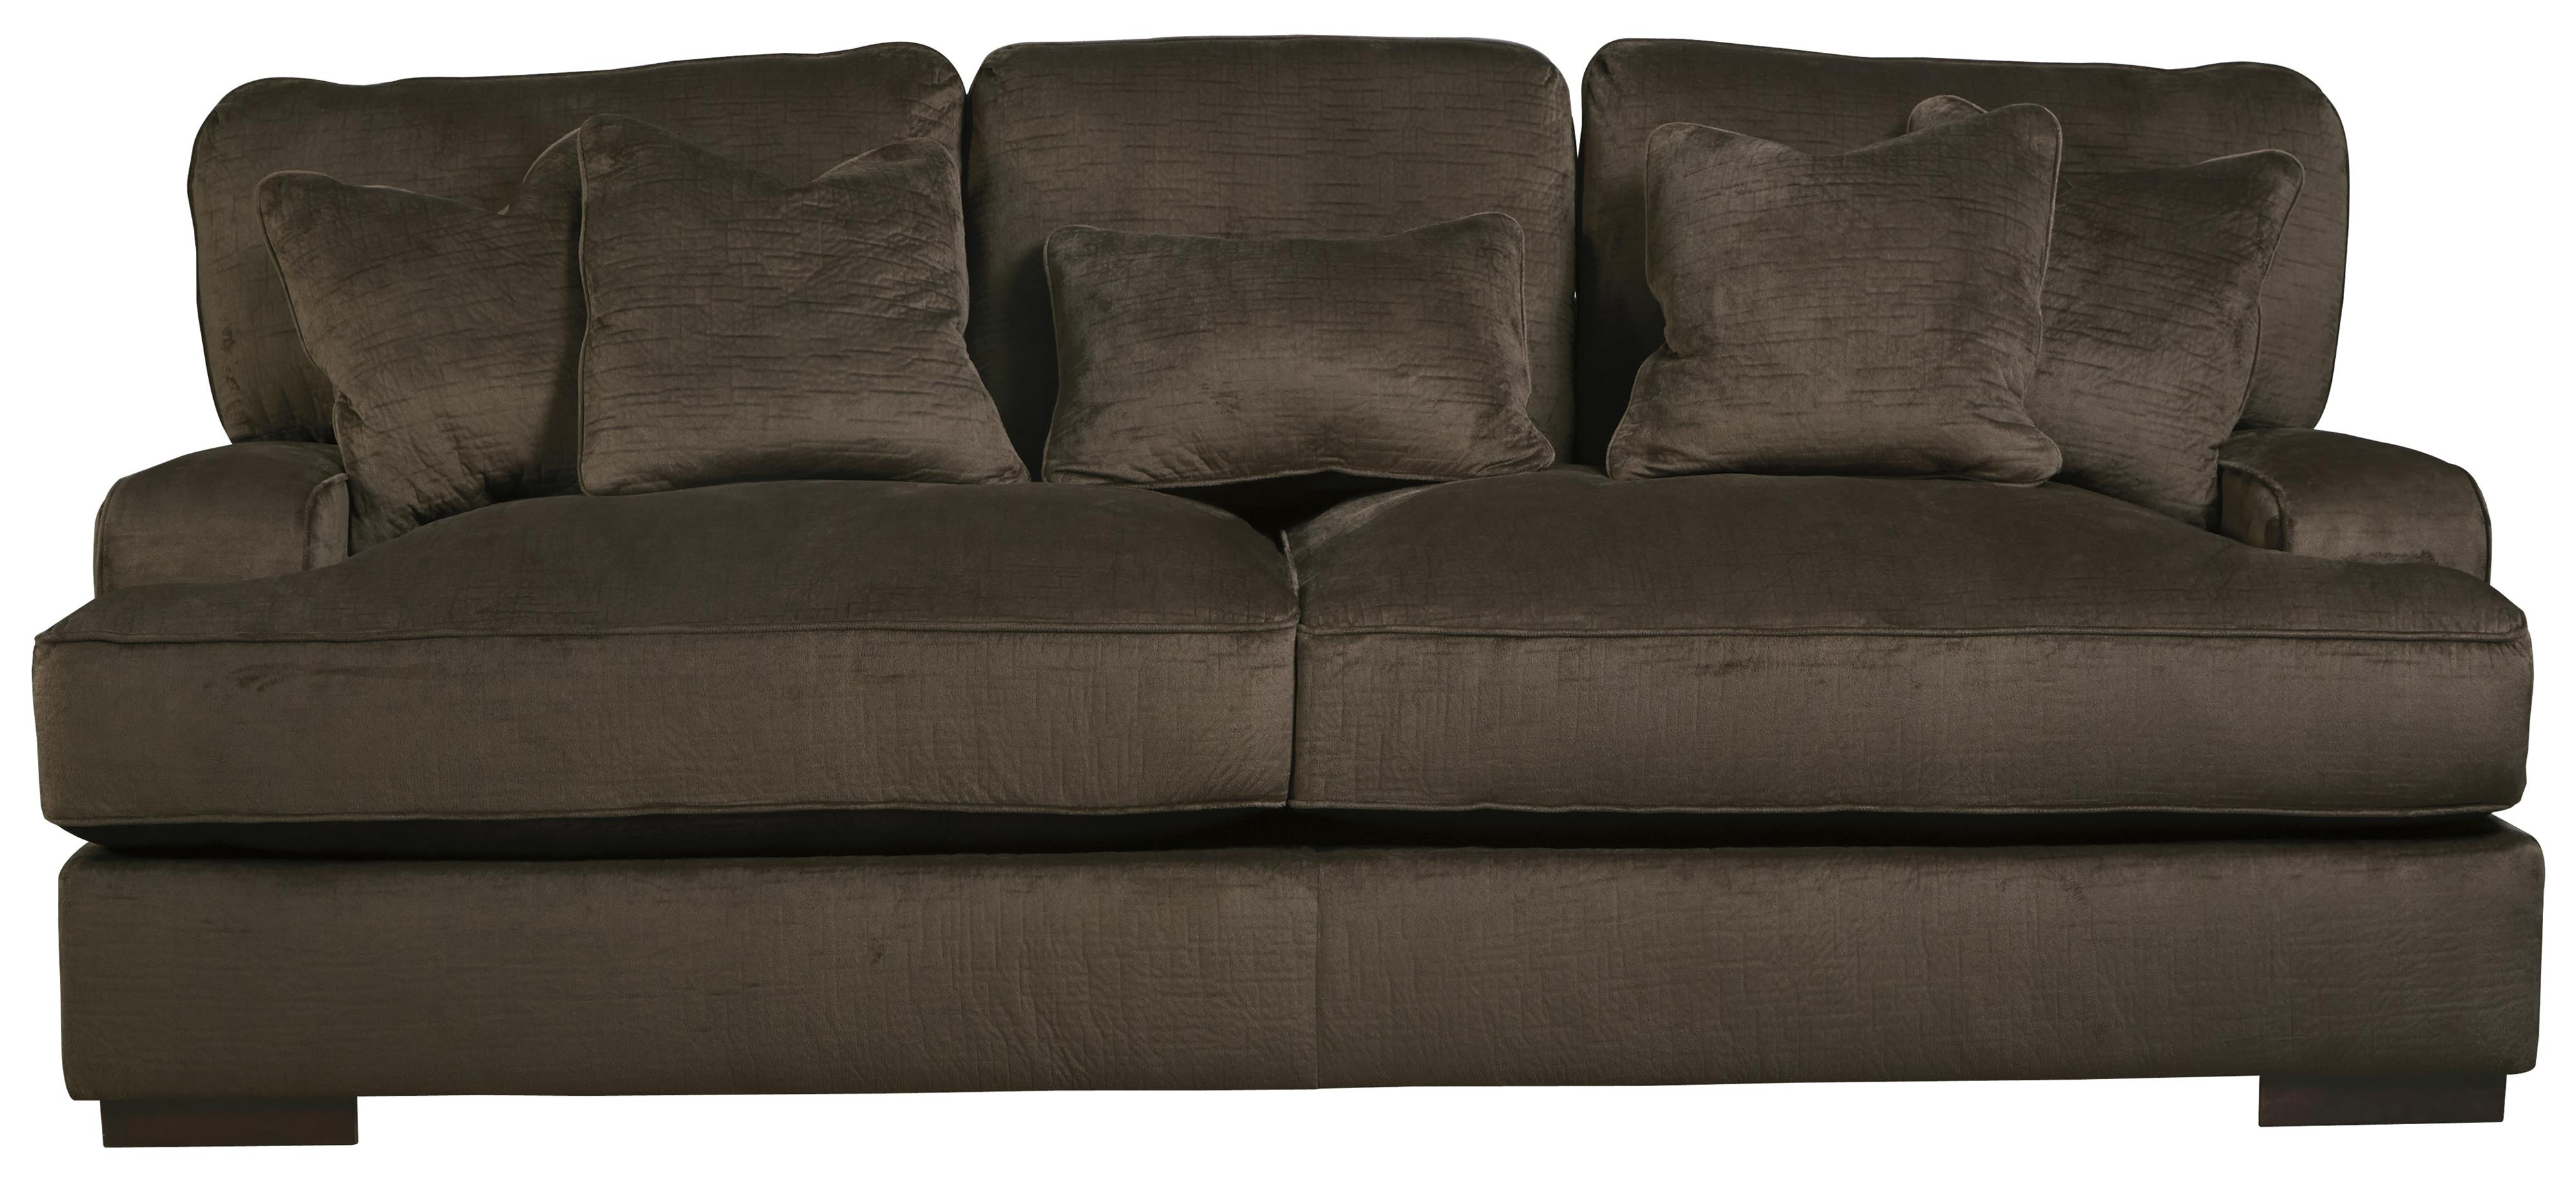 Benchcraft Bisenti Sofa - Item Number: 6530638